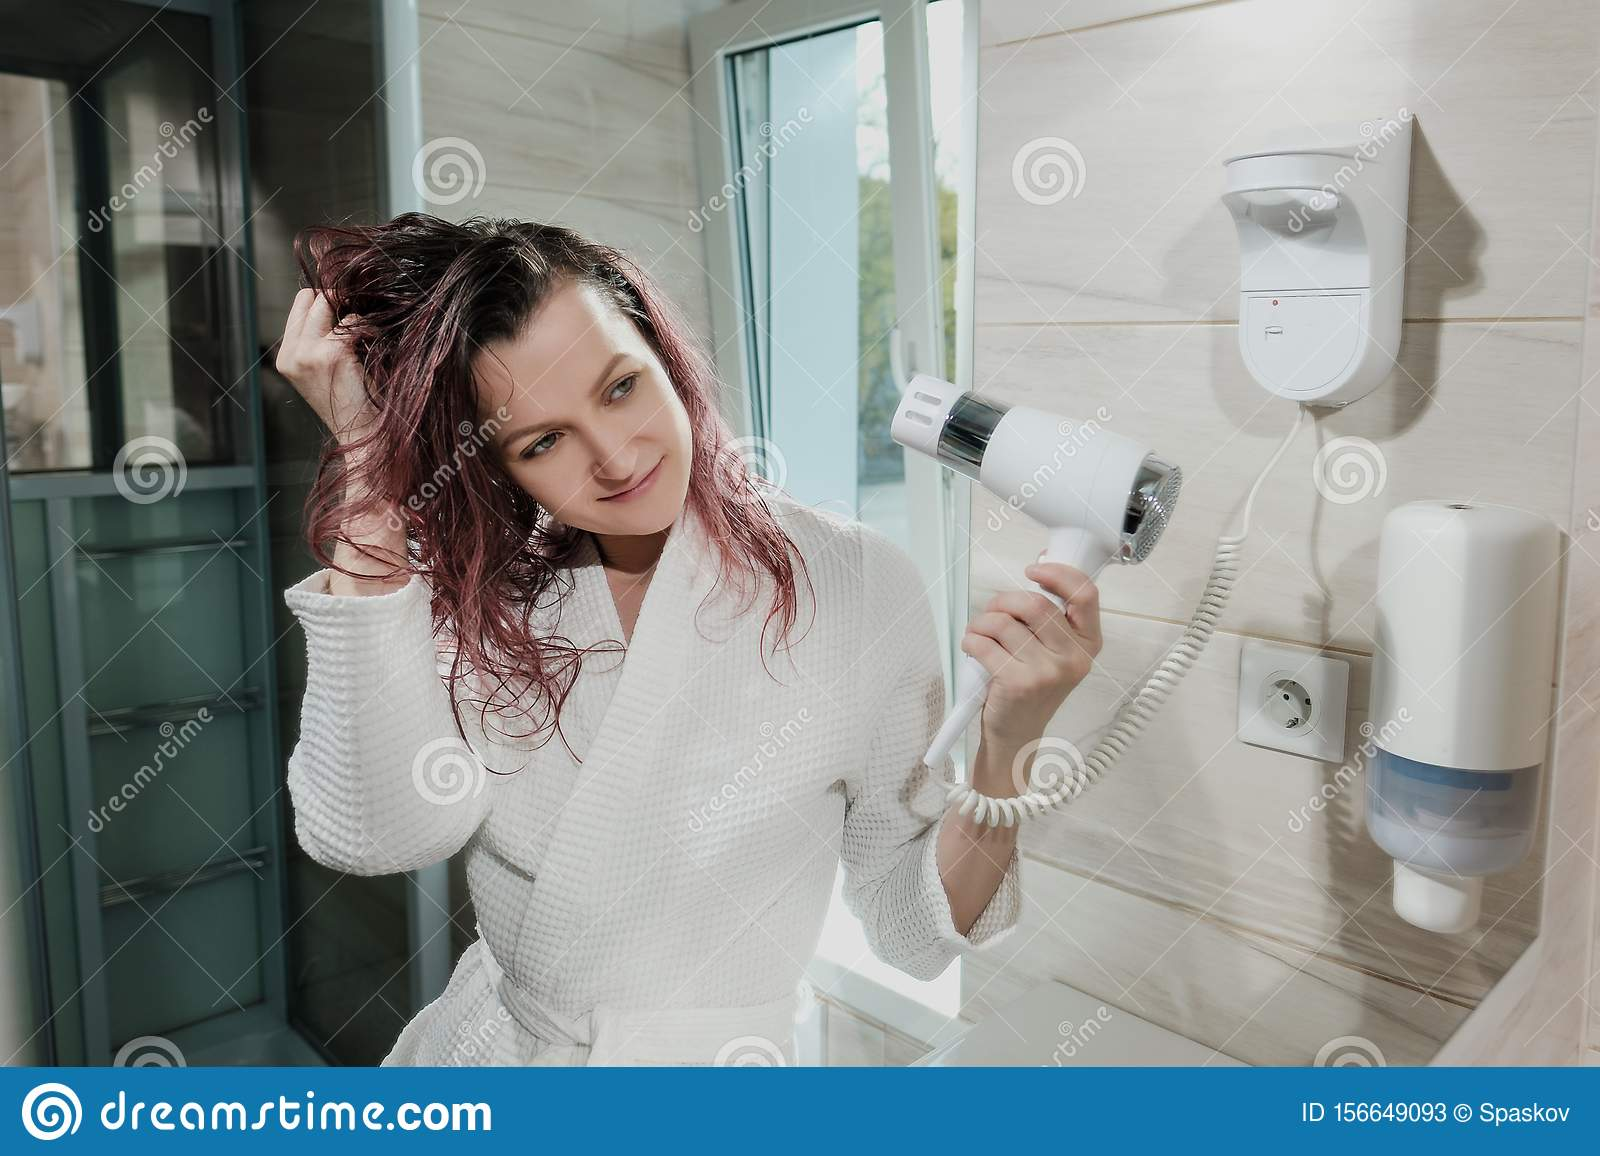 Young beautiful woman with dyed hair in white bathrobe in bathroom dries hair with hairdryer and smiles.